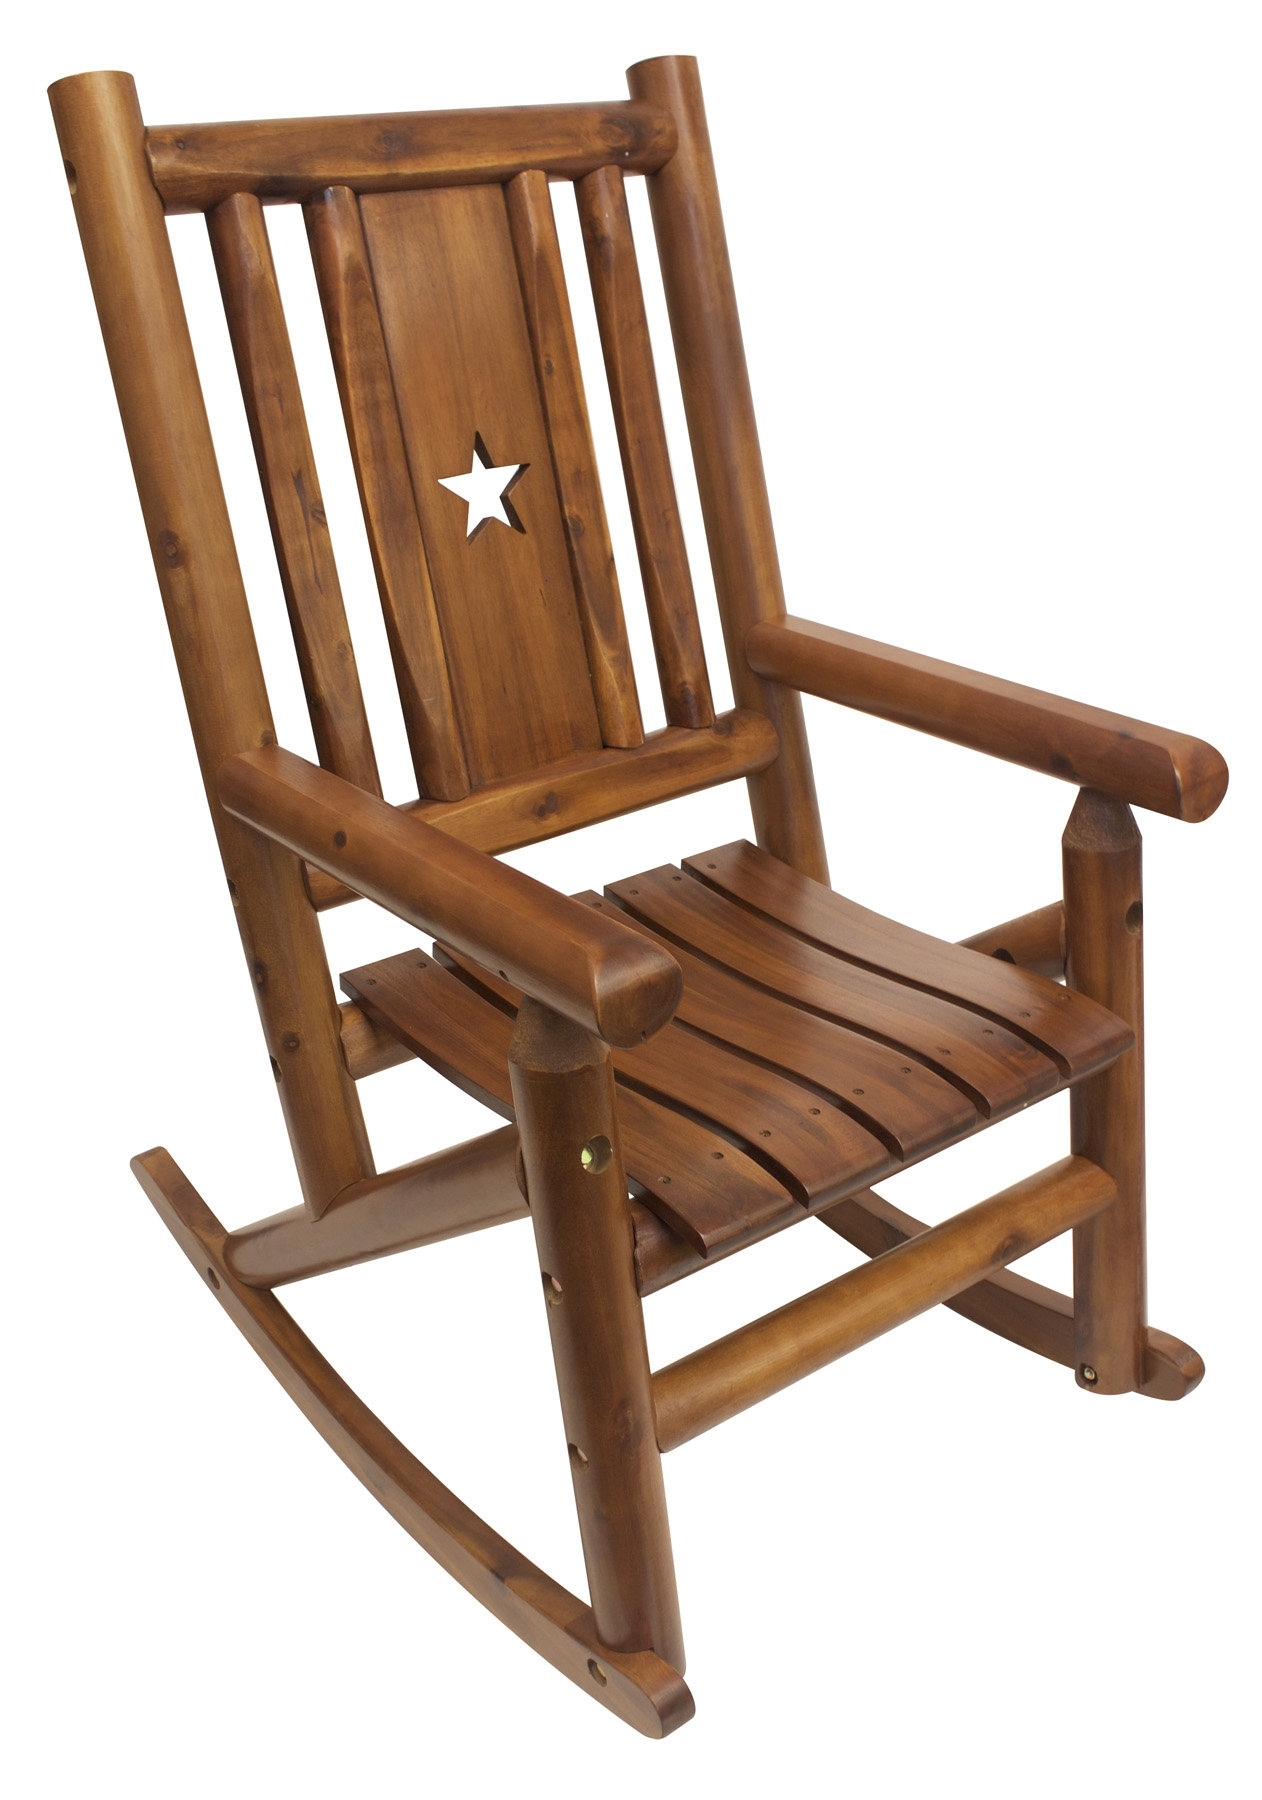 Leighcountry Amber Log Star Single Porch Rocking Chair | Wayfair Inside Char Log Patio Rocking Chairs With Star (#10 of 15)